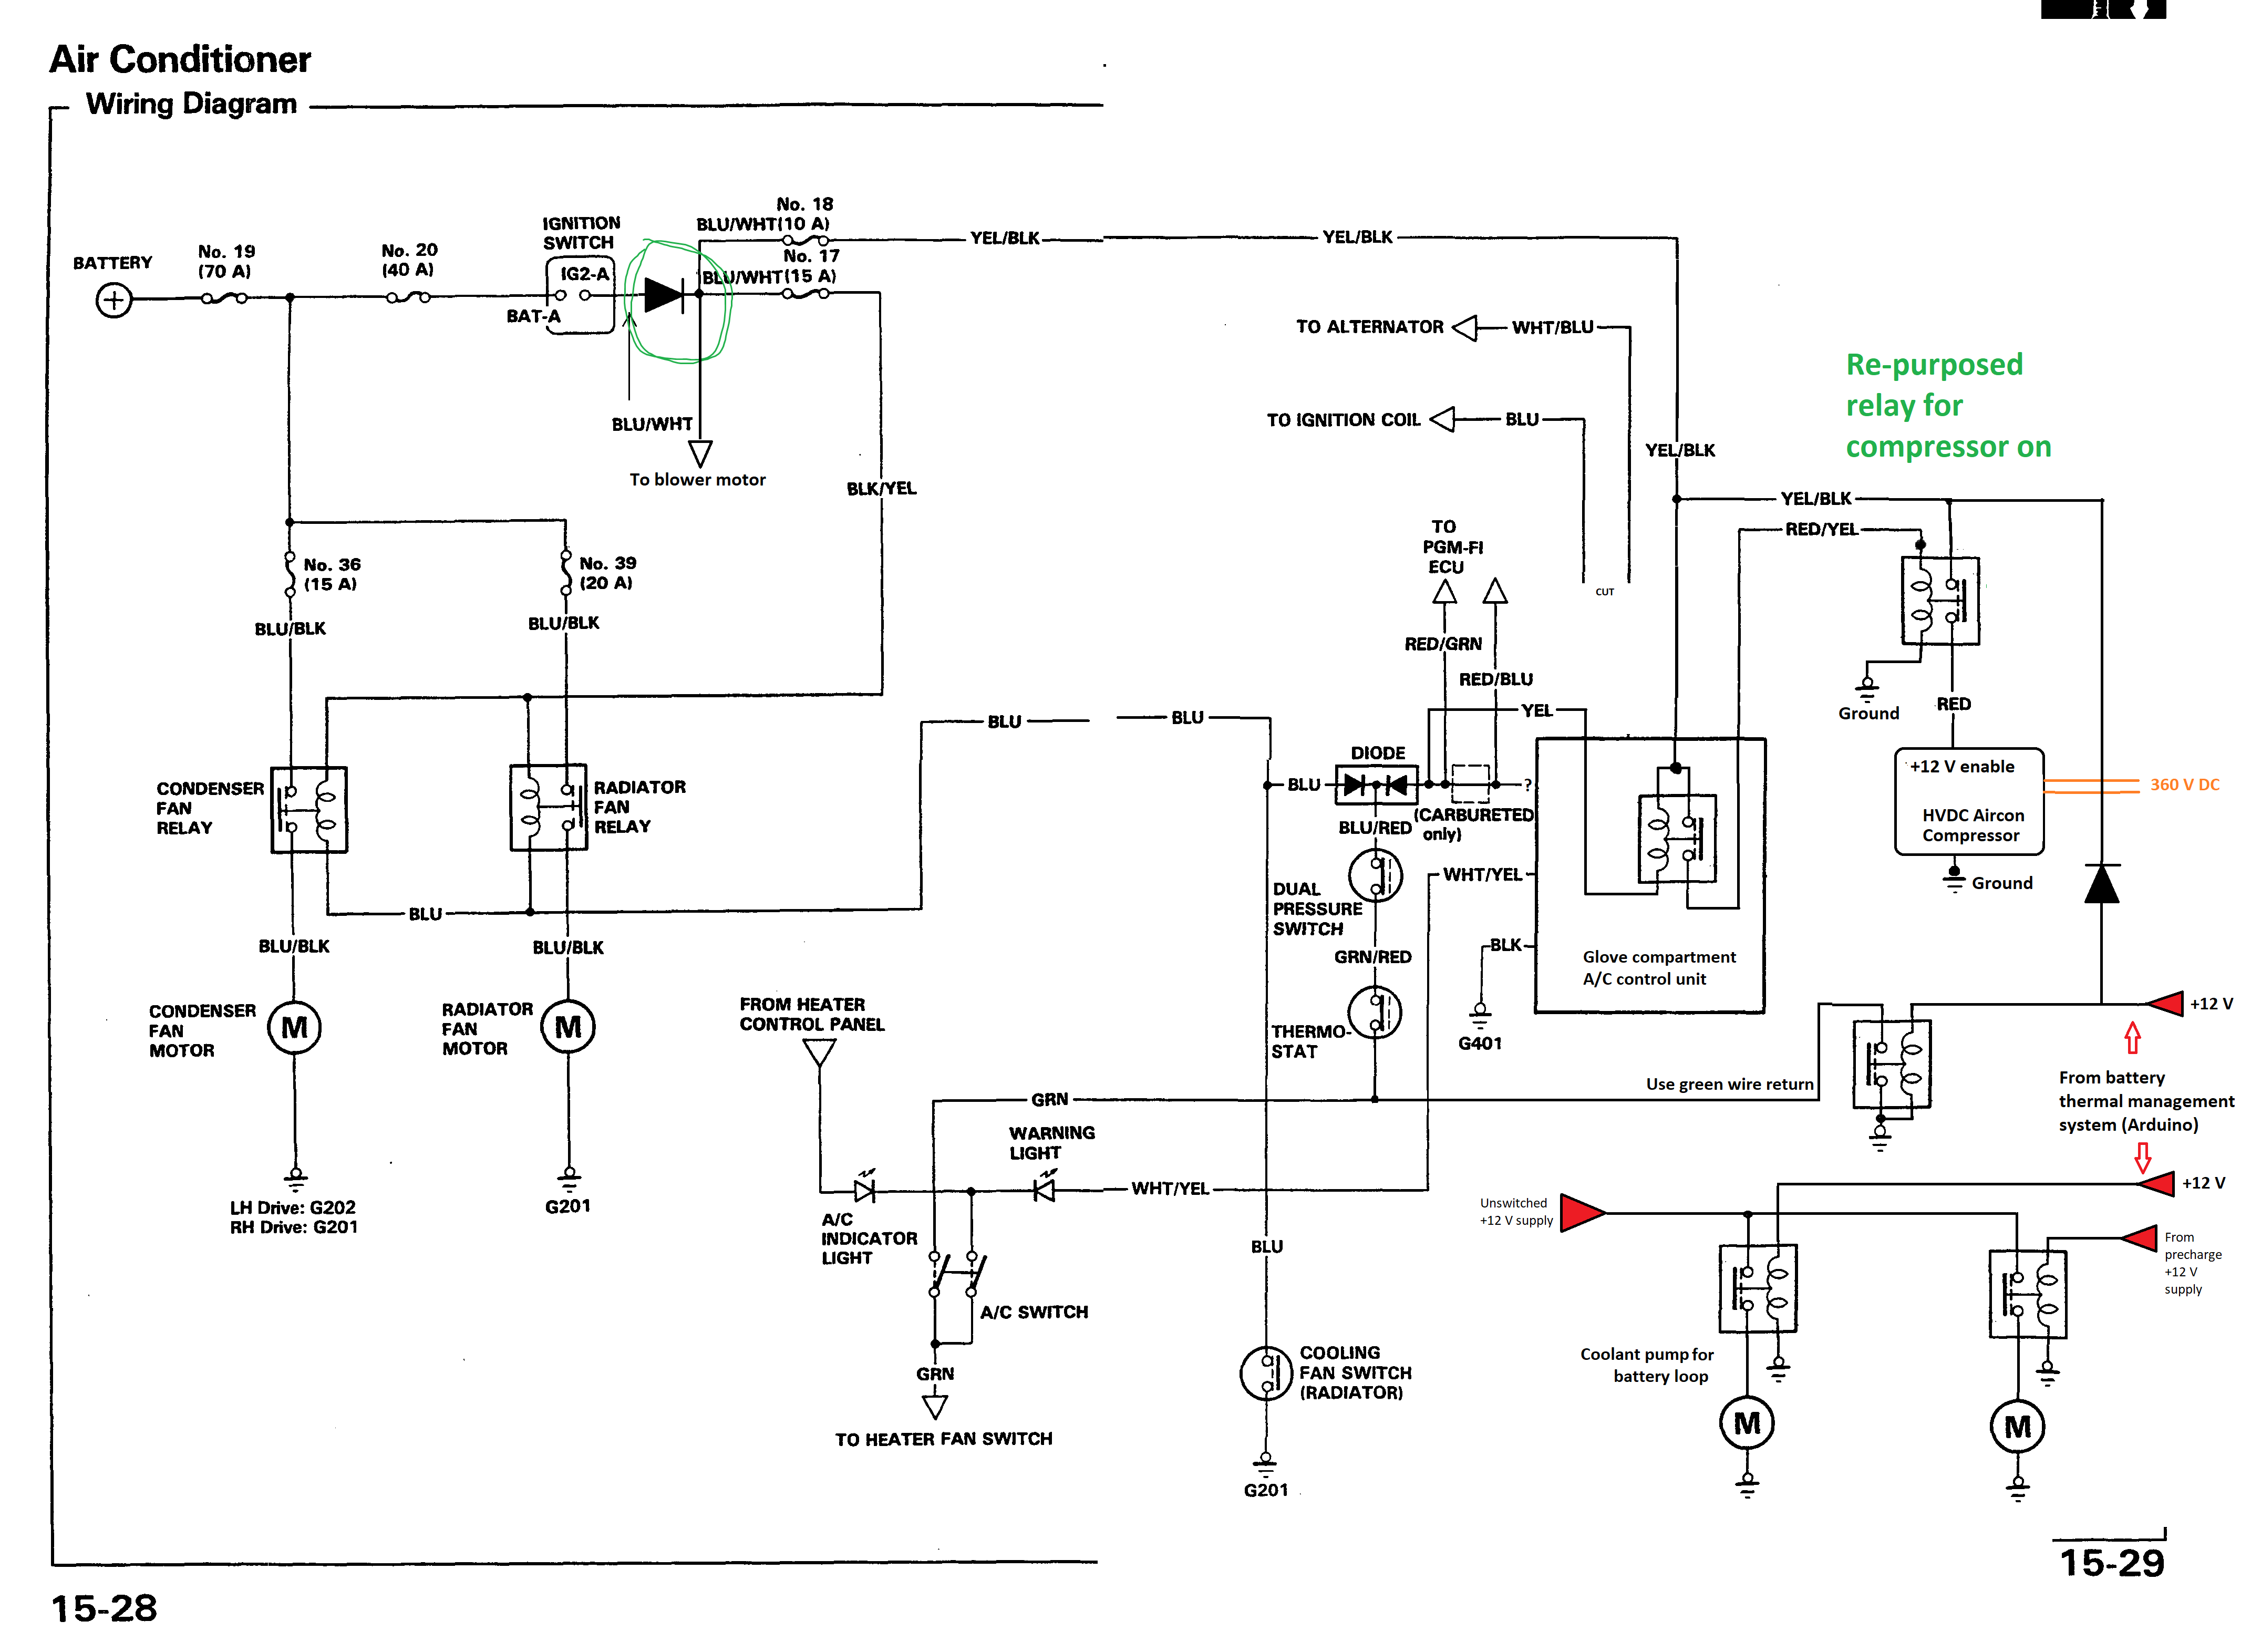 new Aircon wiring5.png